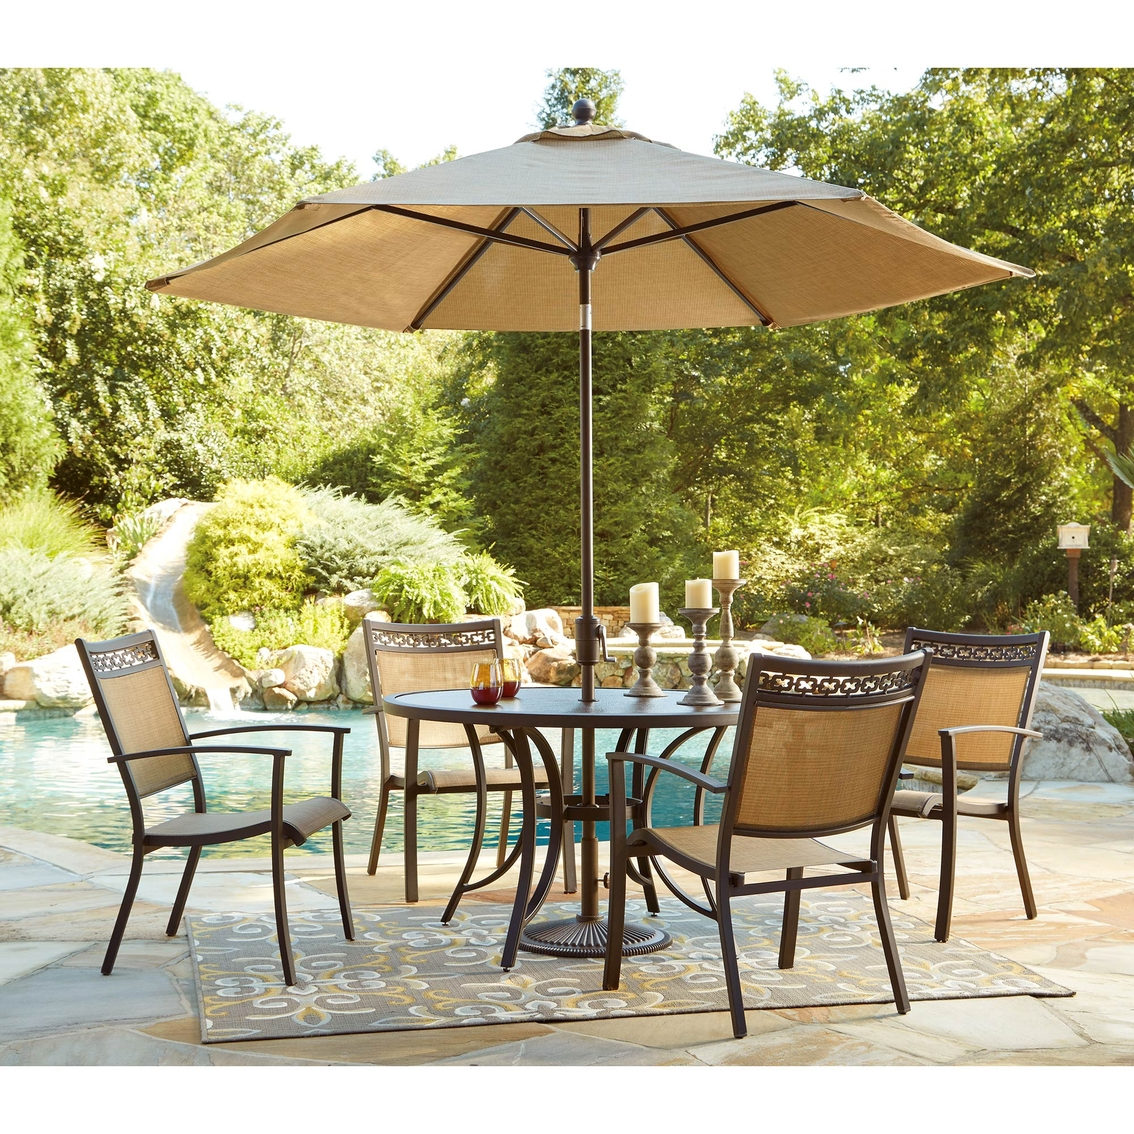 Ashley Carmadelia Round Dining Table 4 Chairs And Umbrella With Base